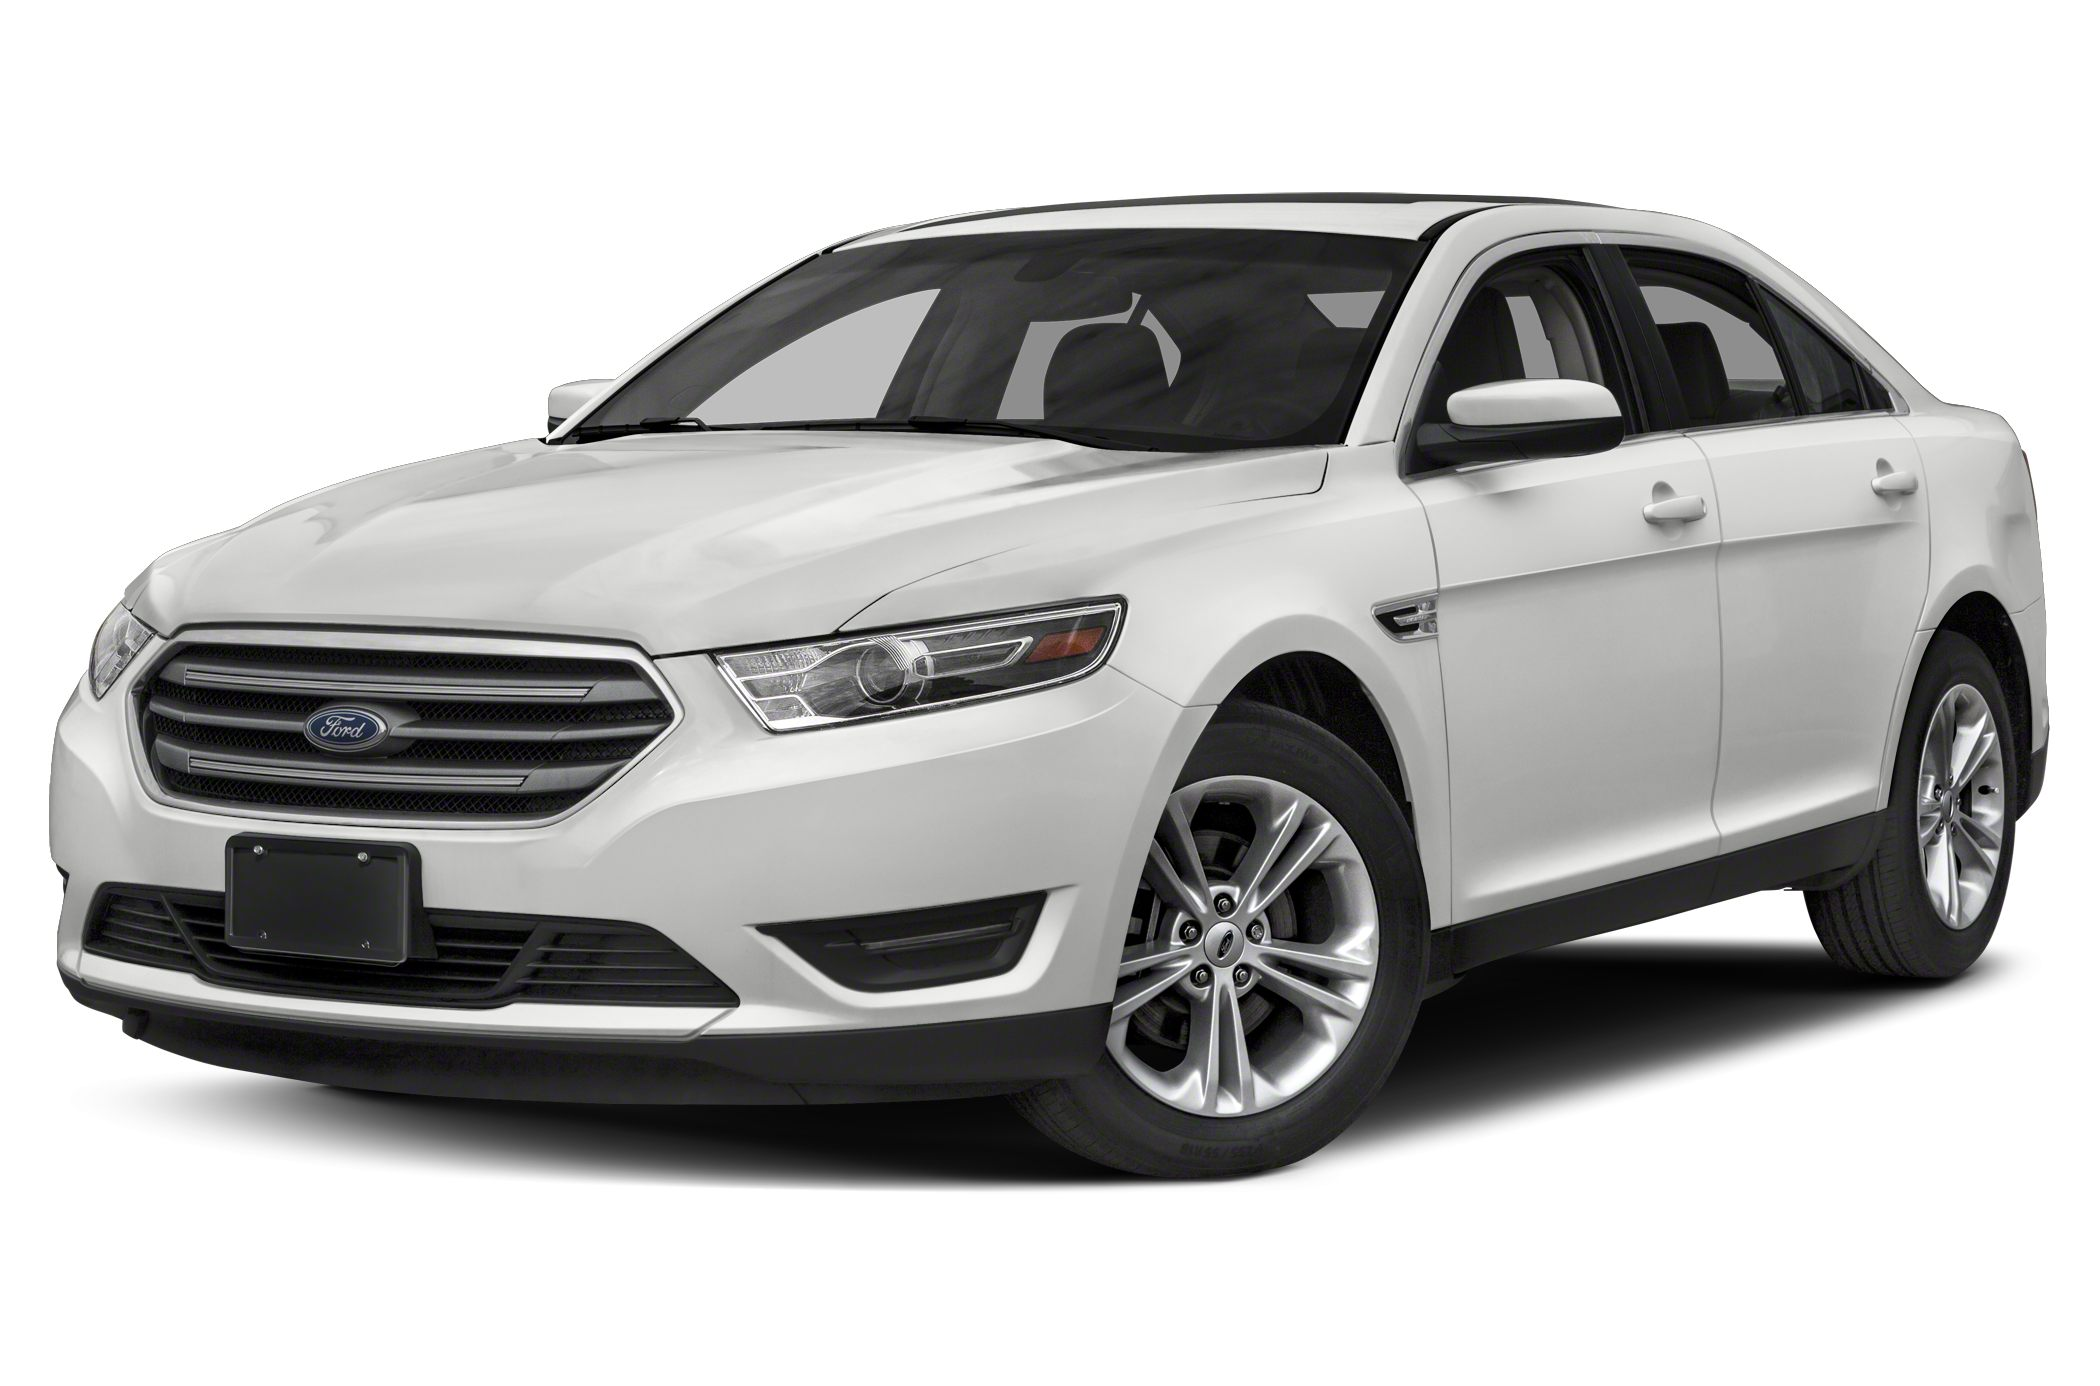 2017 Ford Taurus SEL We have some great specials here online Dont forget to mention internet pric